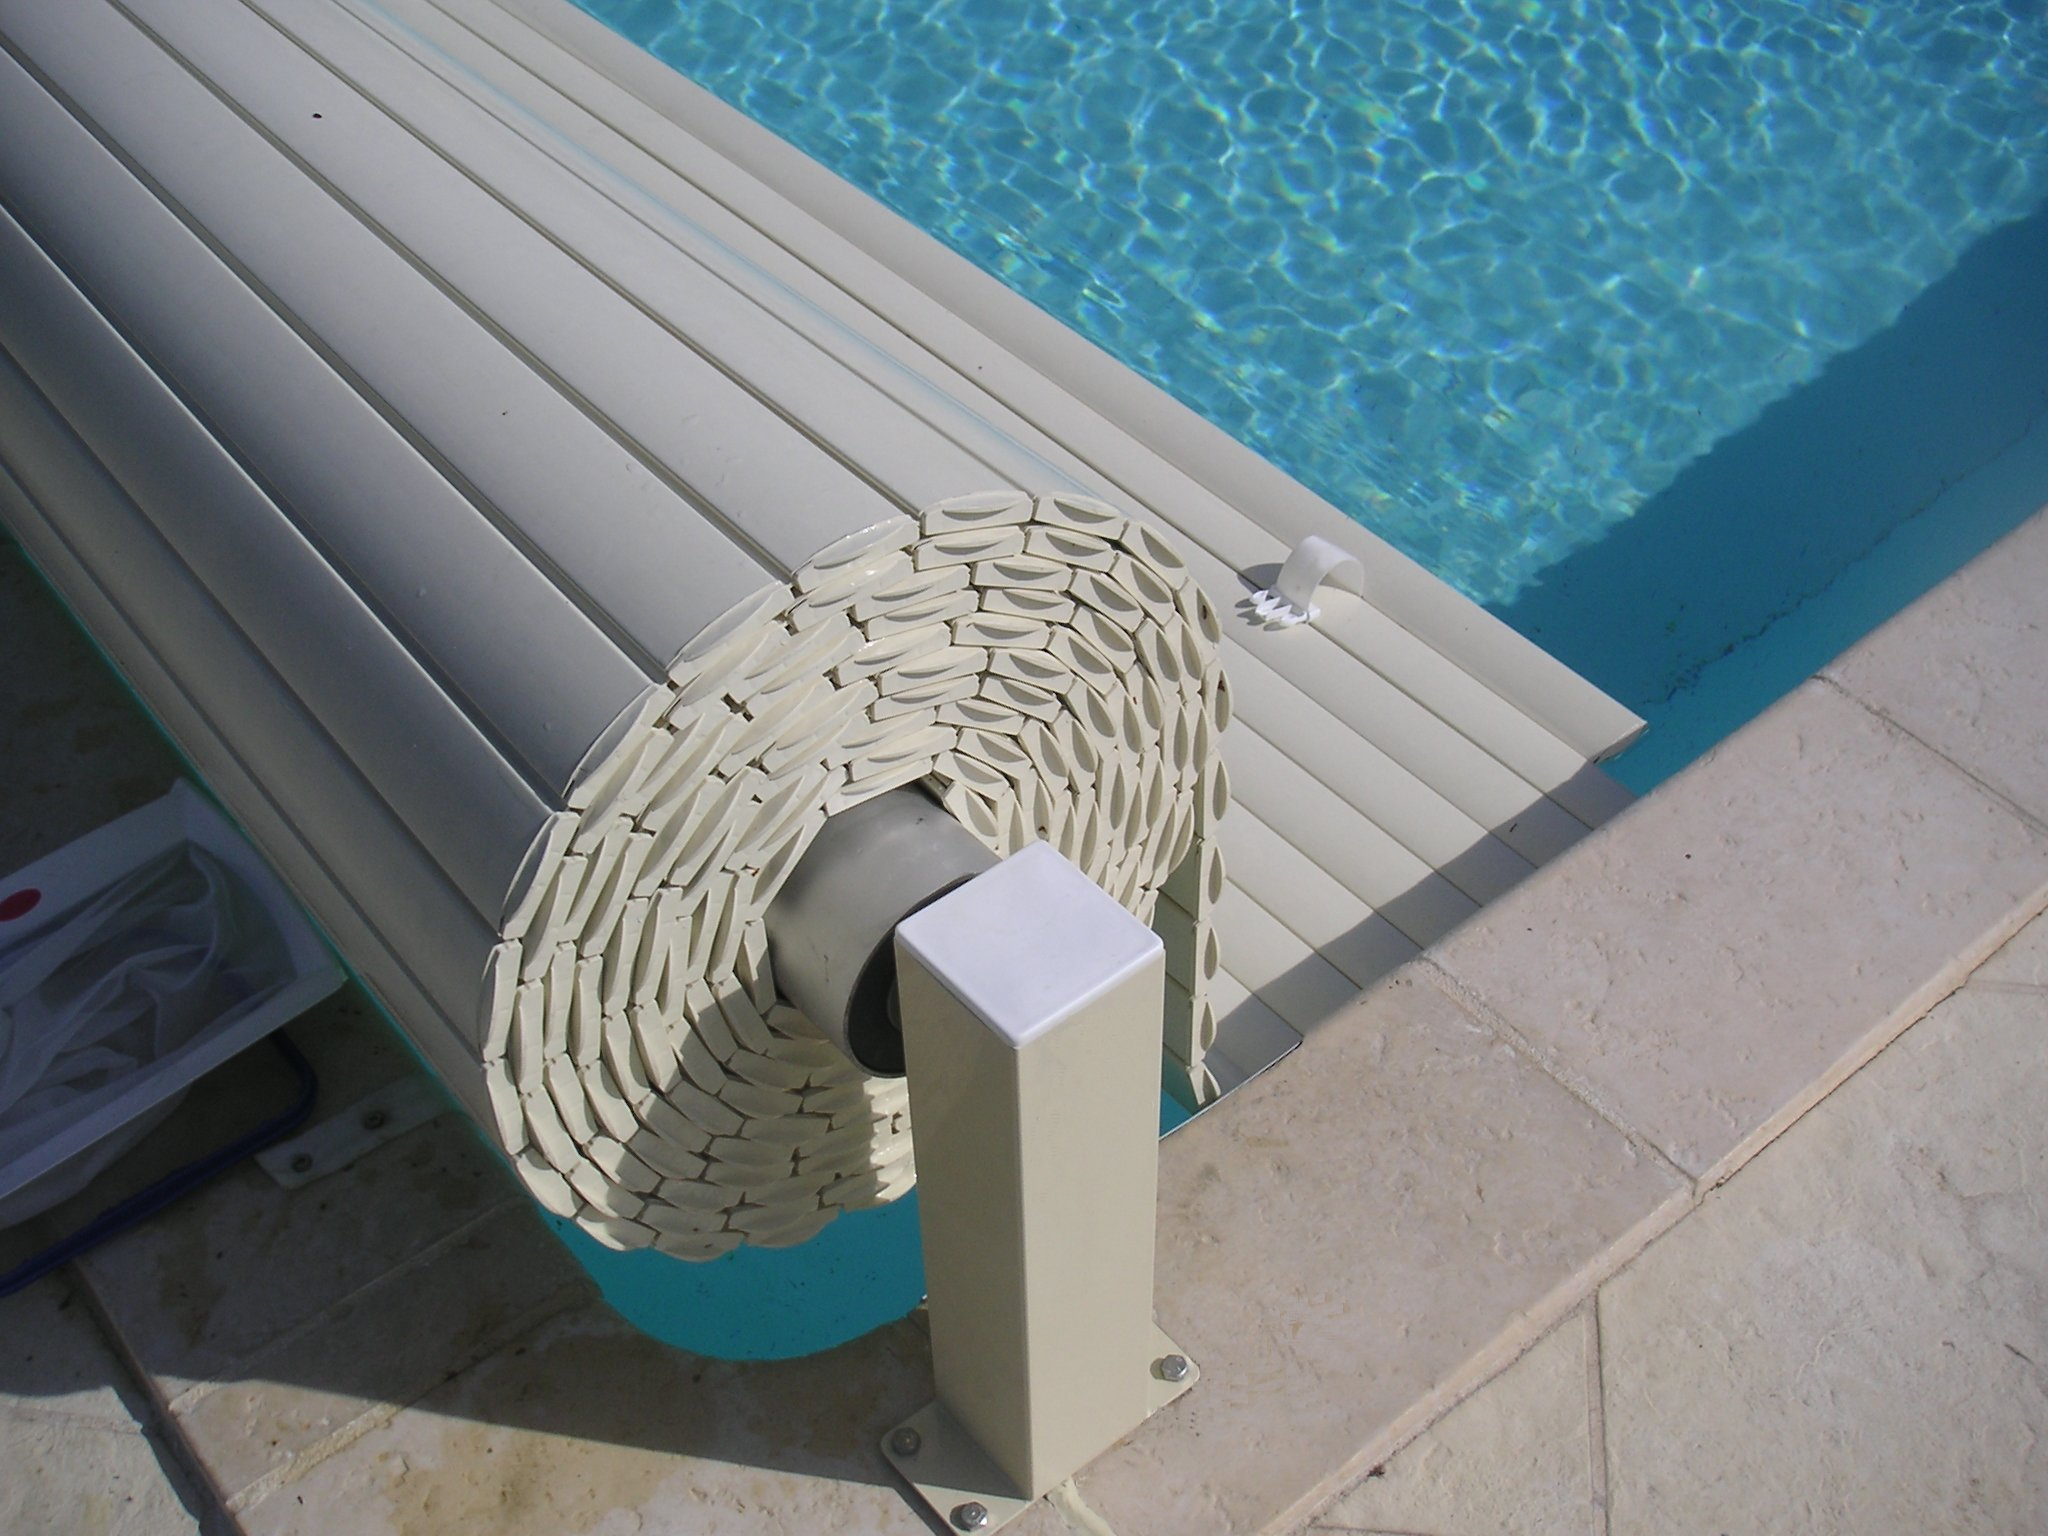 Couverture piscine automatique hors sol de qualit for Couverture pour piscine